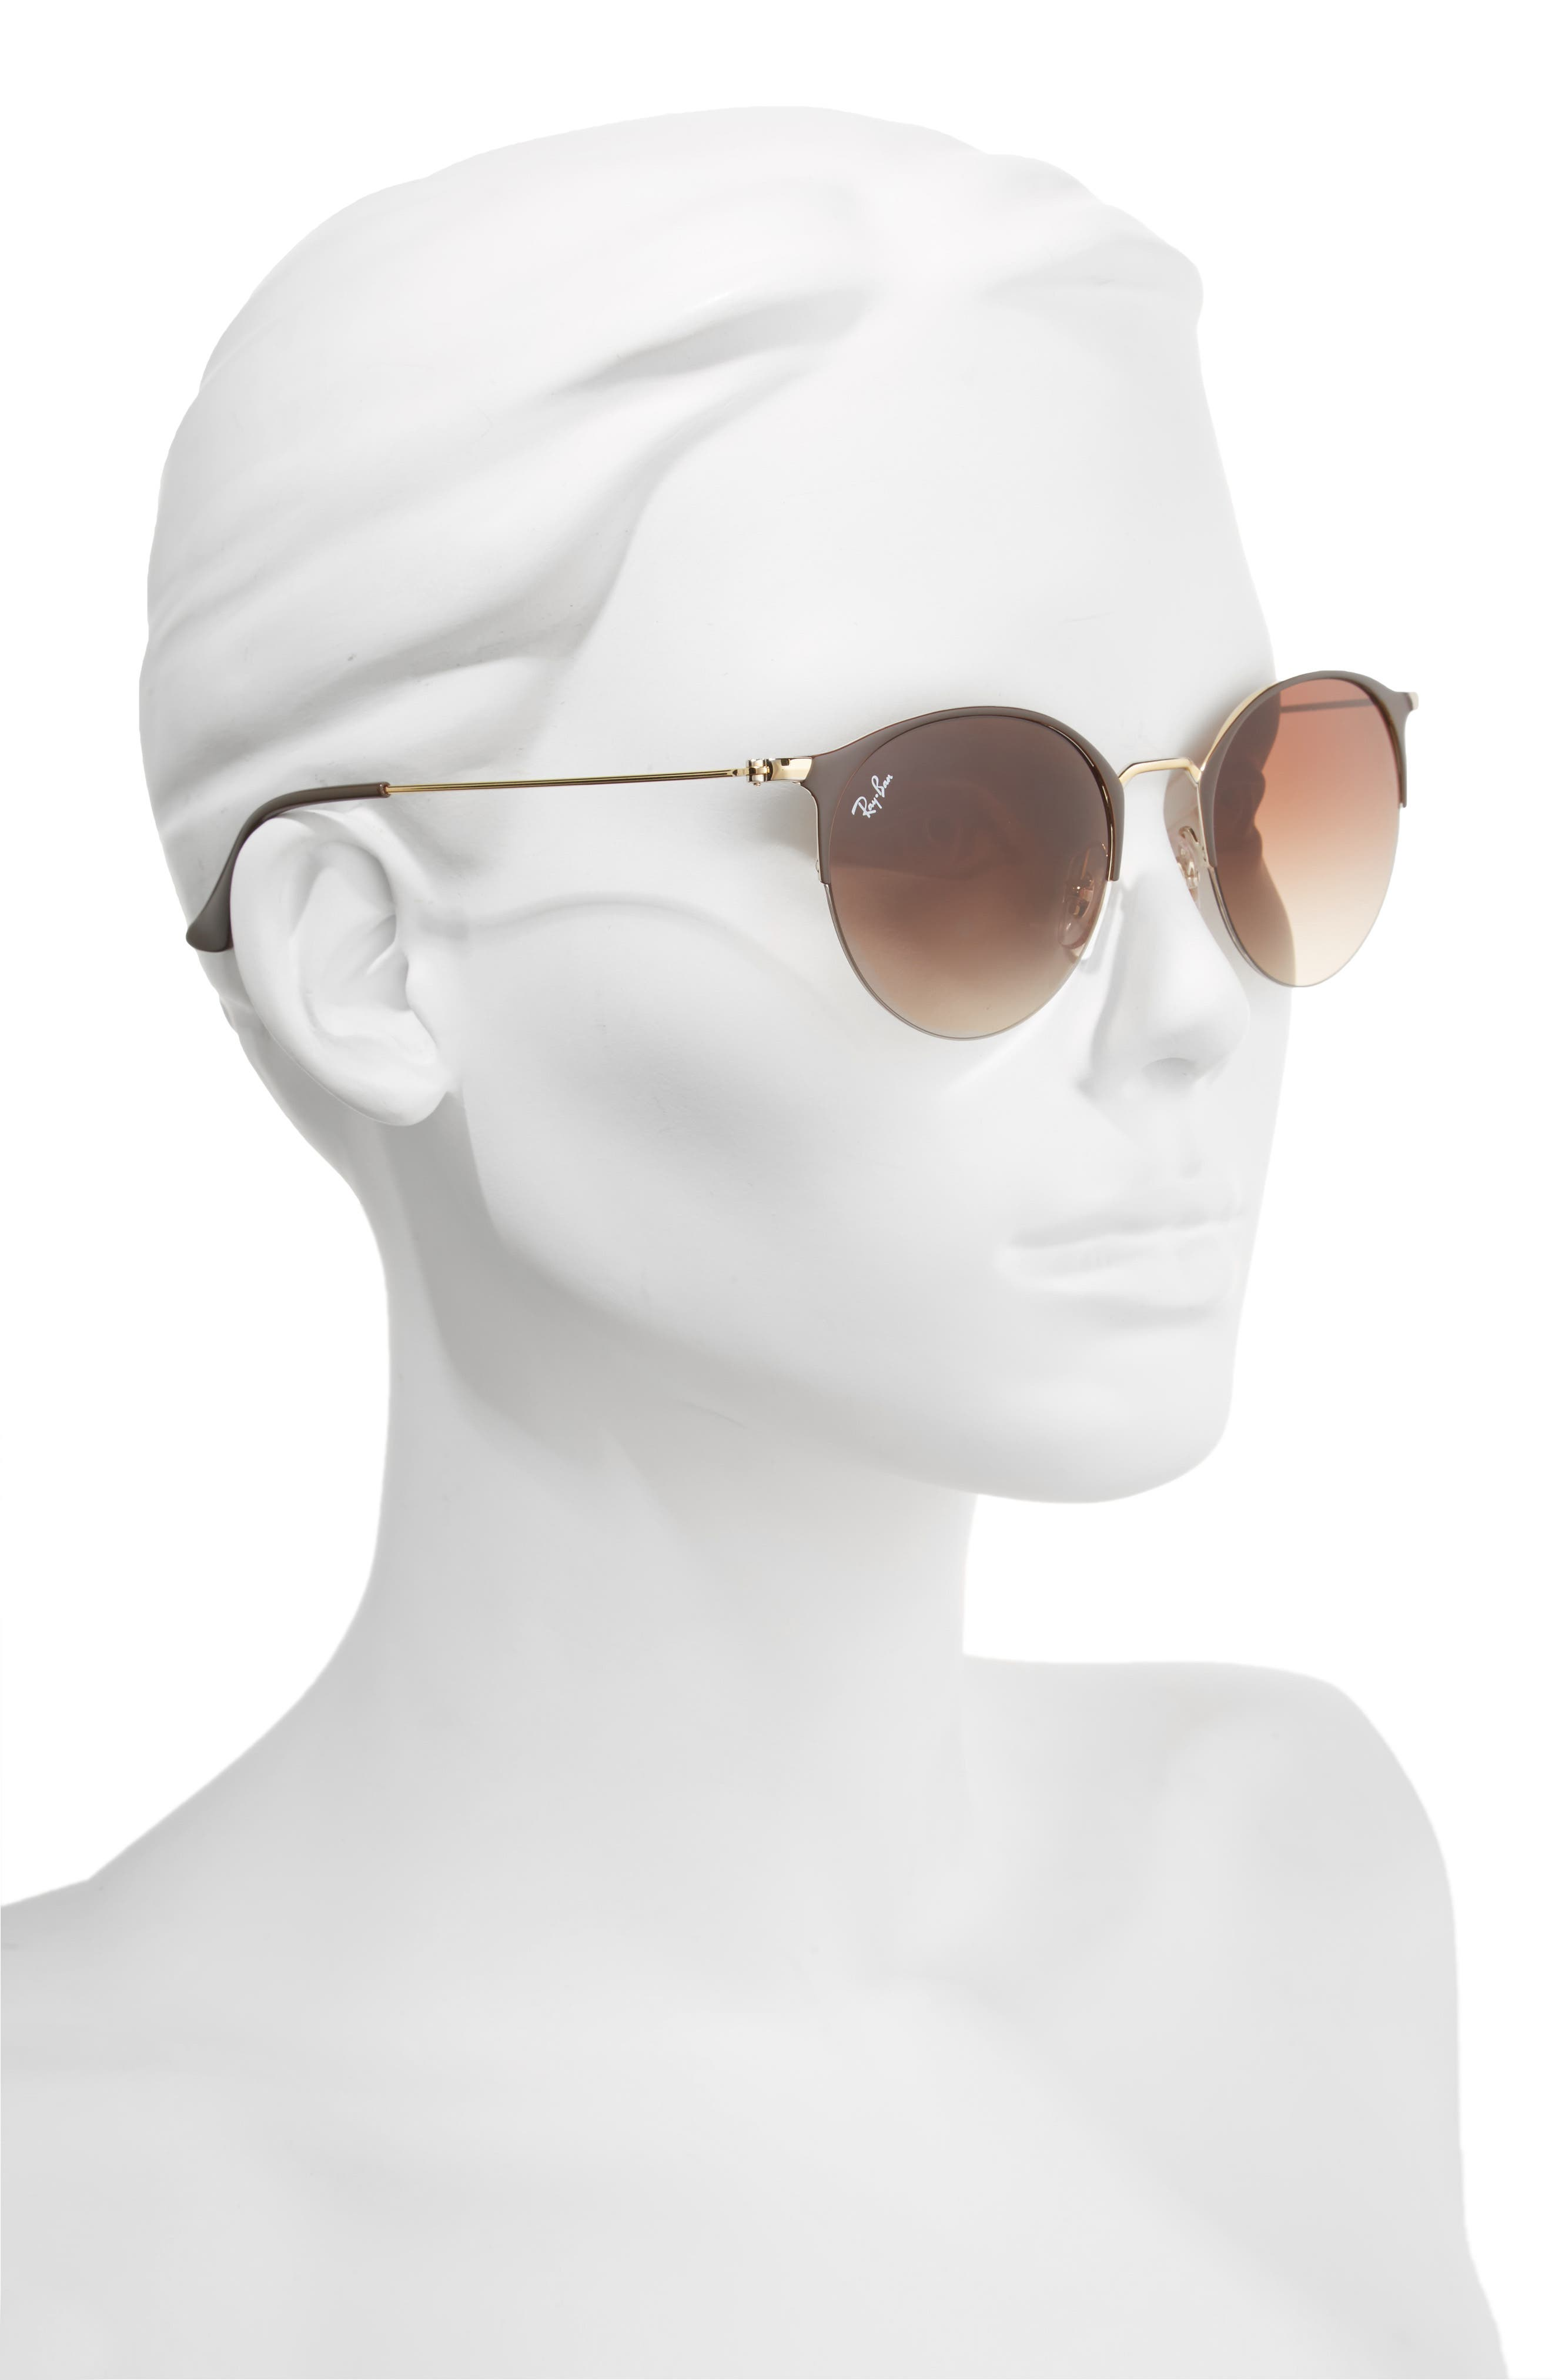 50mm Round Clubmaster Sunglasses,                             Alternate thumbnail 2, color,                             200